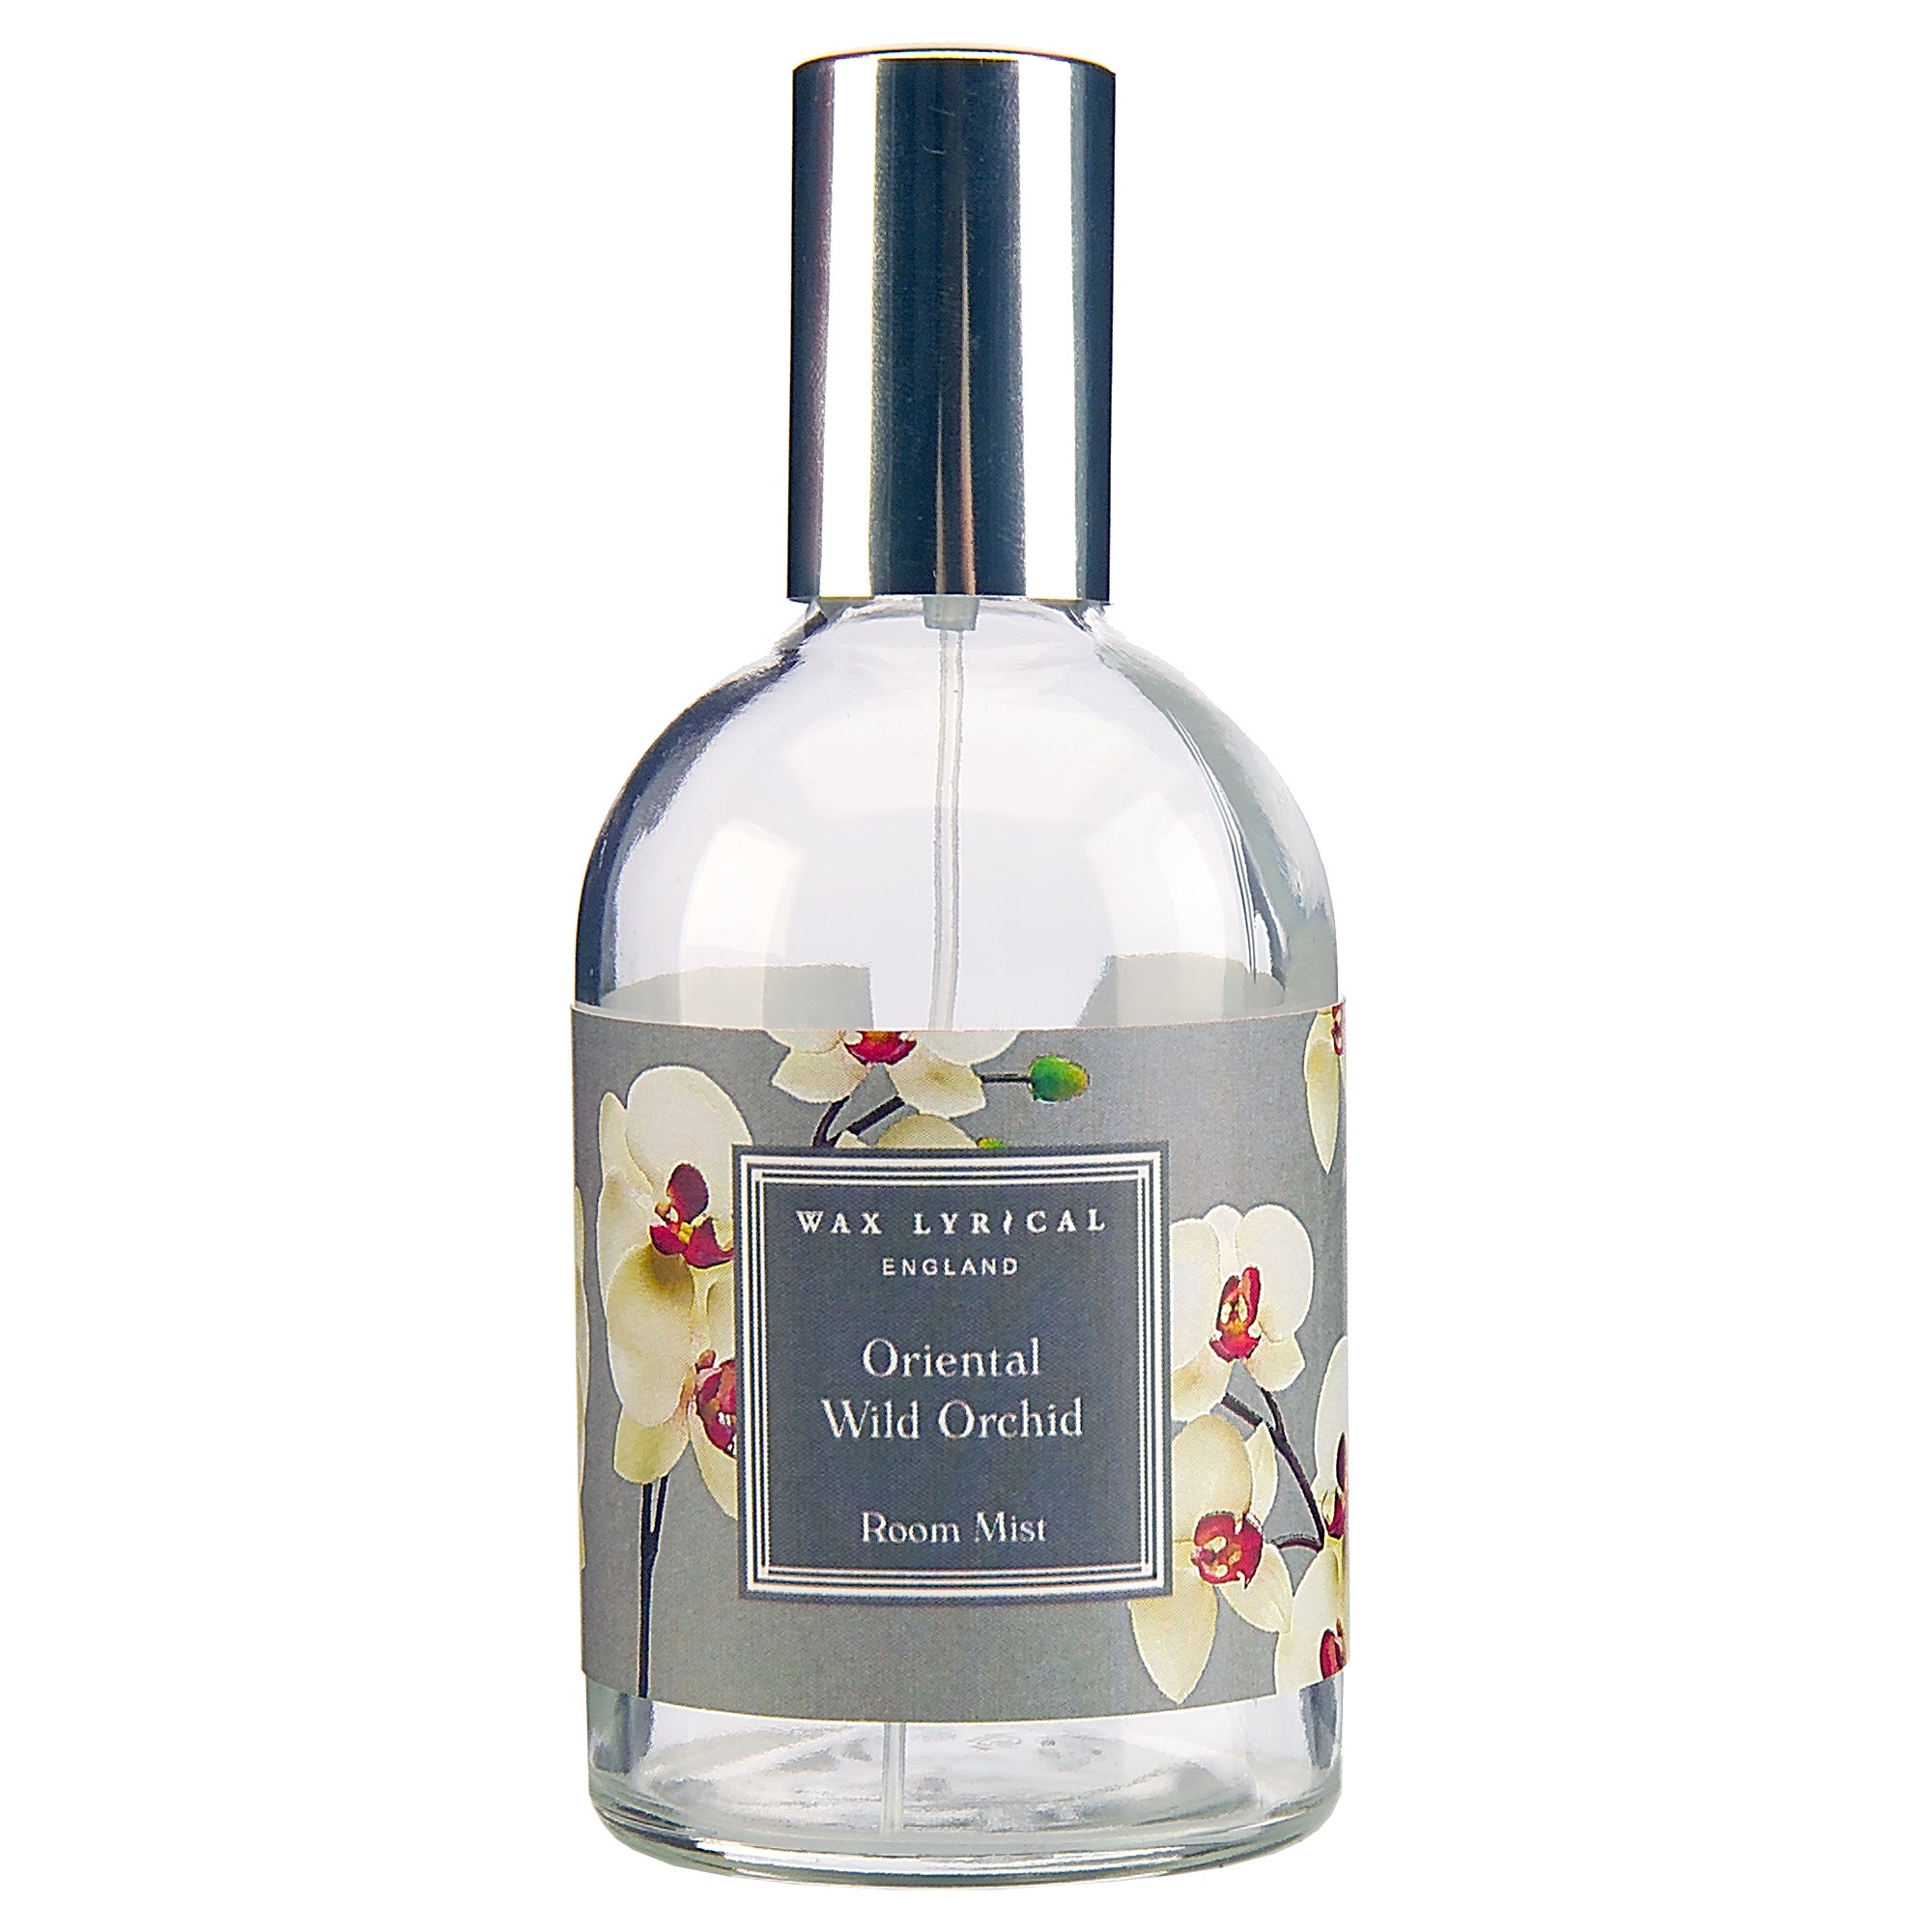 Wax Lyrical Oriental Wild Orchid Room Mist